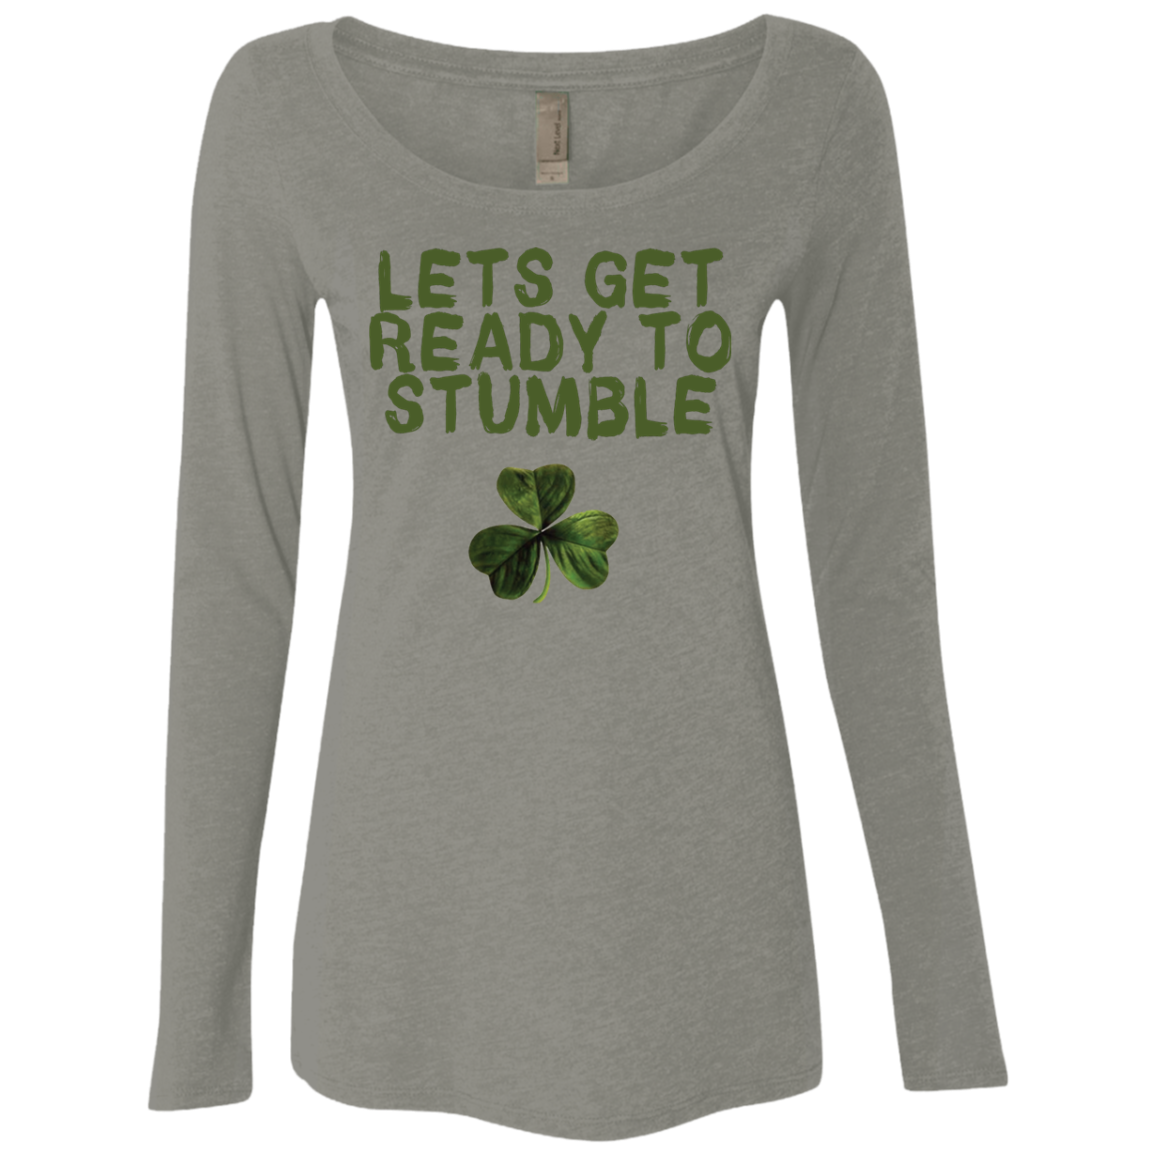 Let's Get Ready To Stumble Women's Long Sleeve Tee